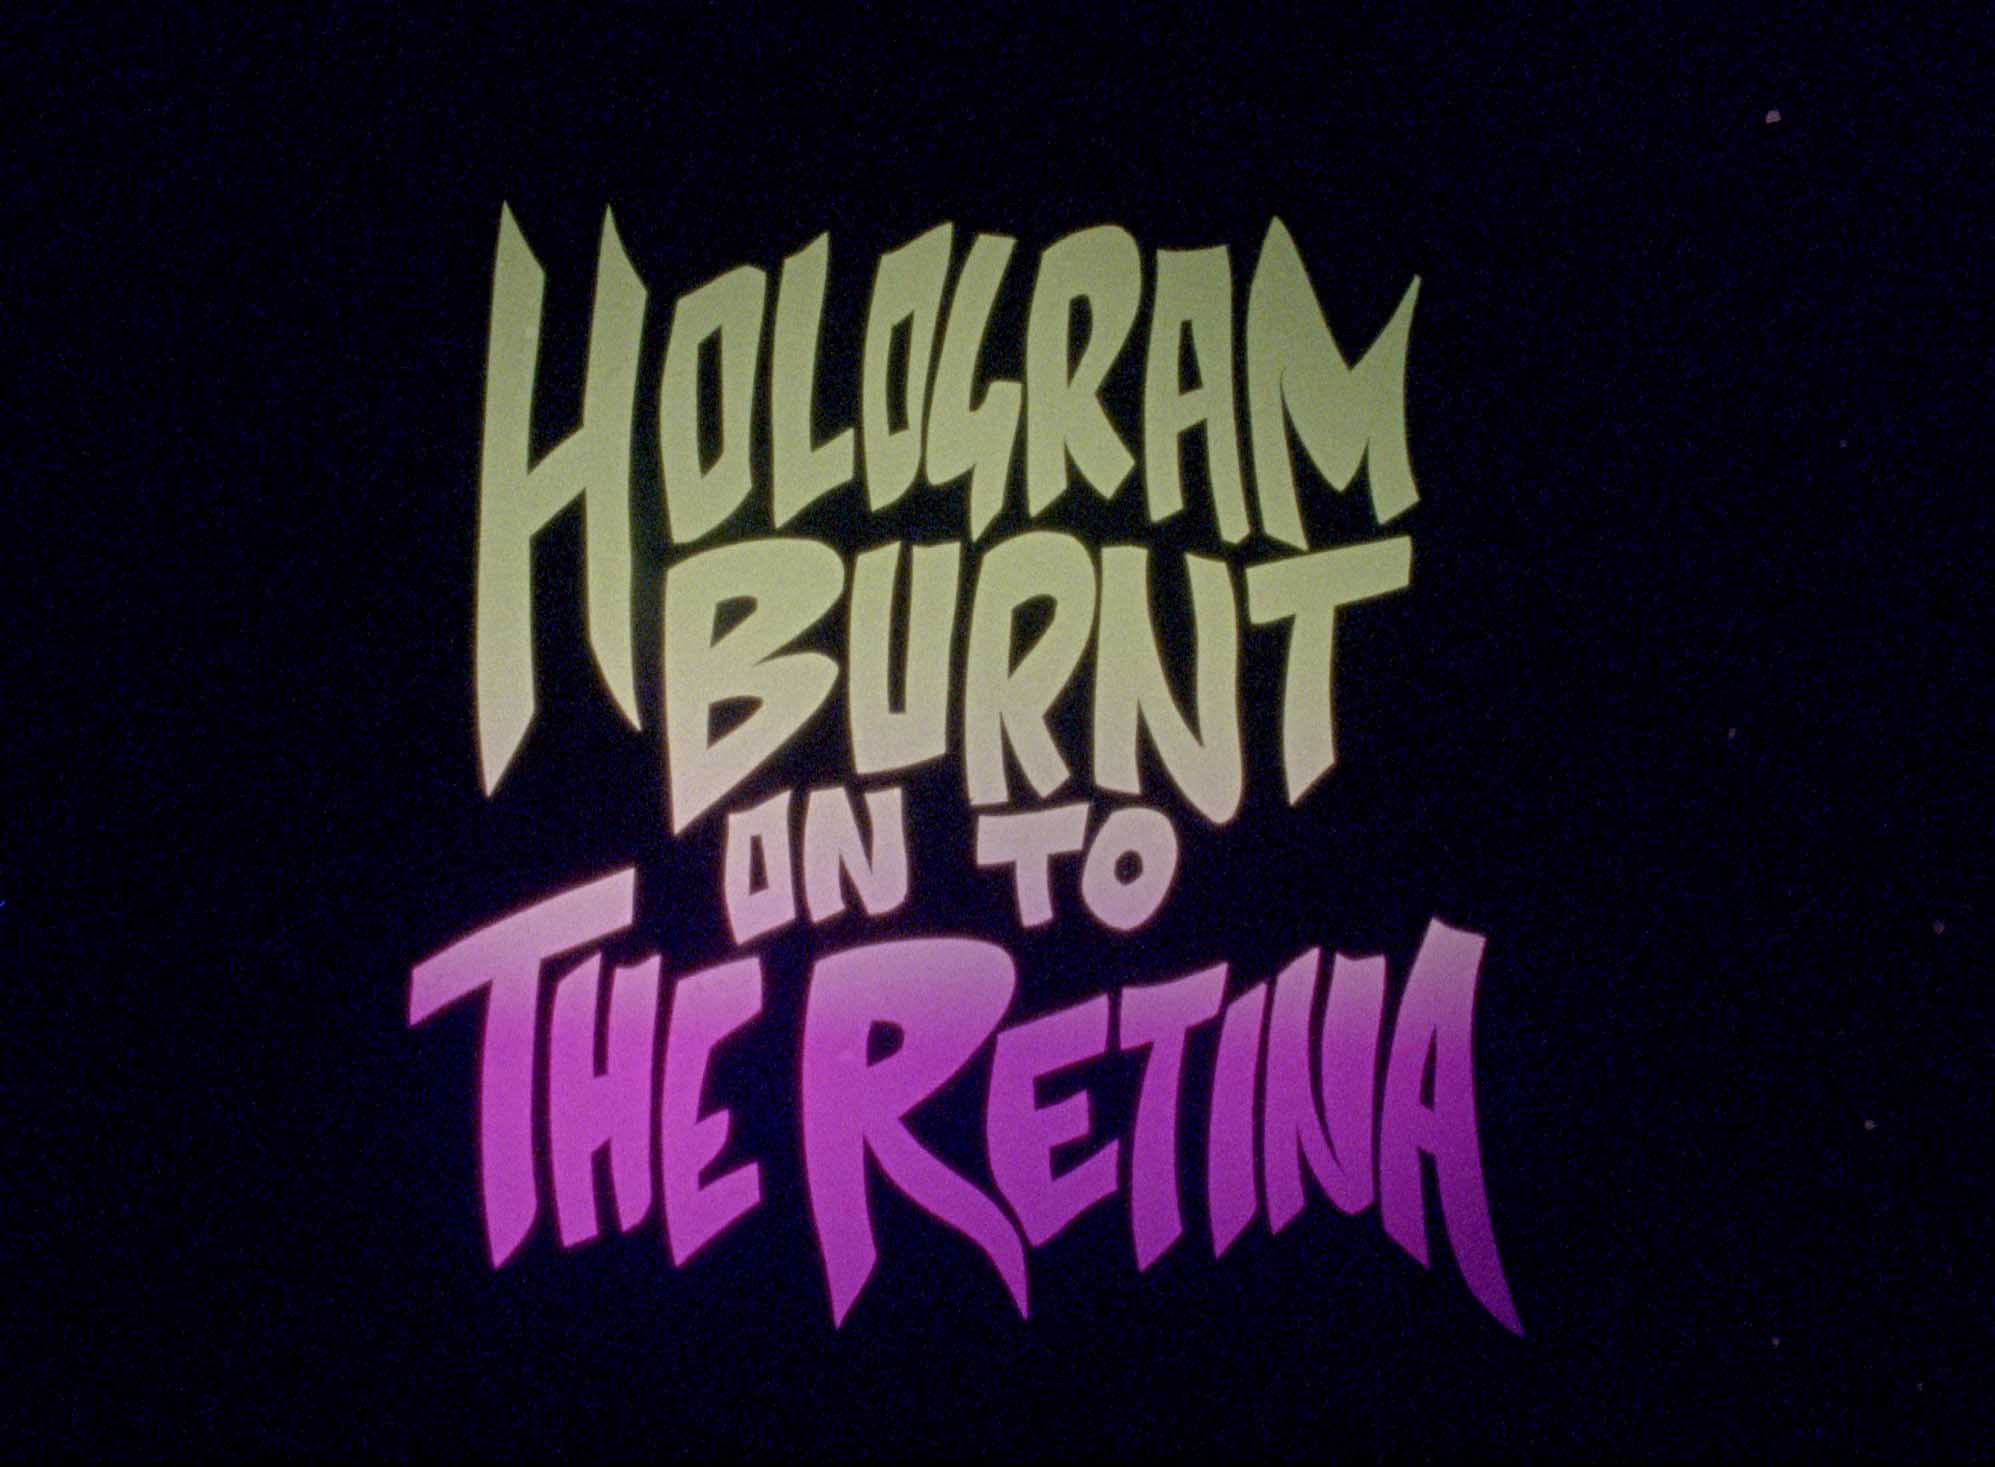 Sam Austen, still from Hologram Burnt On To The Retina, 2018